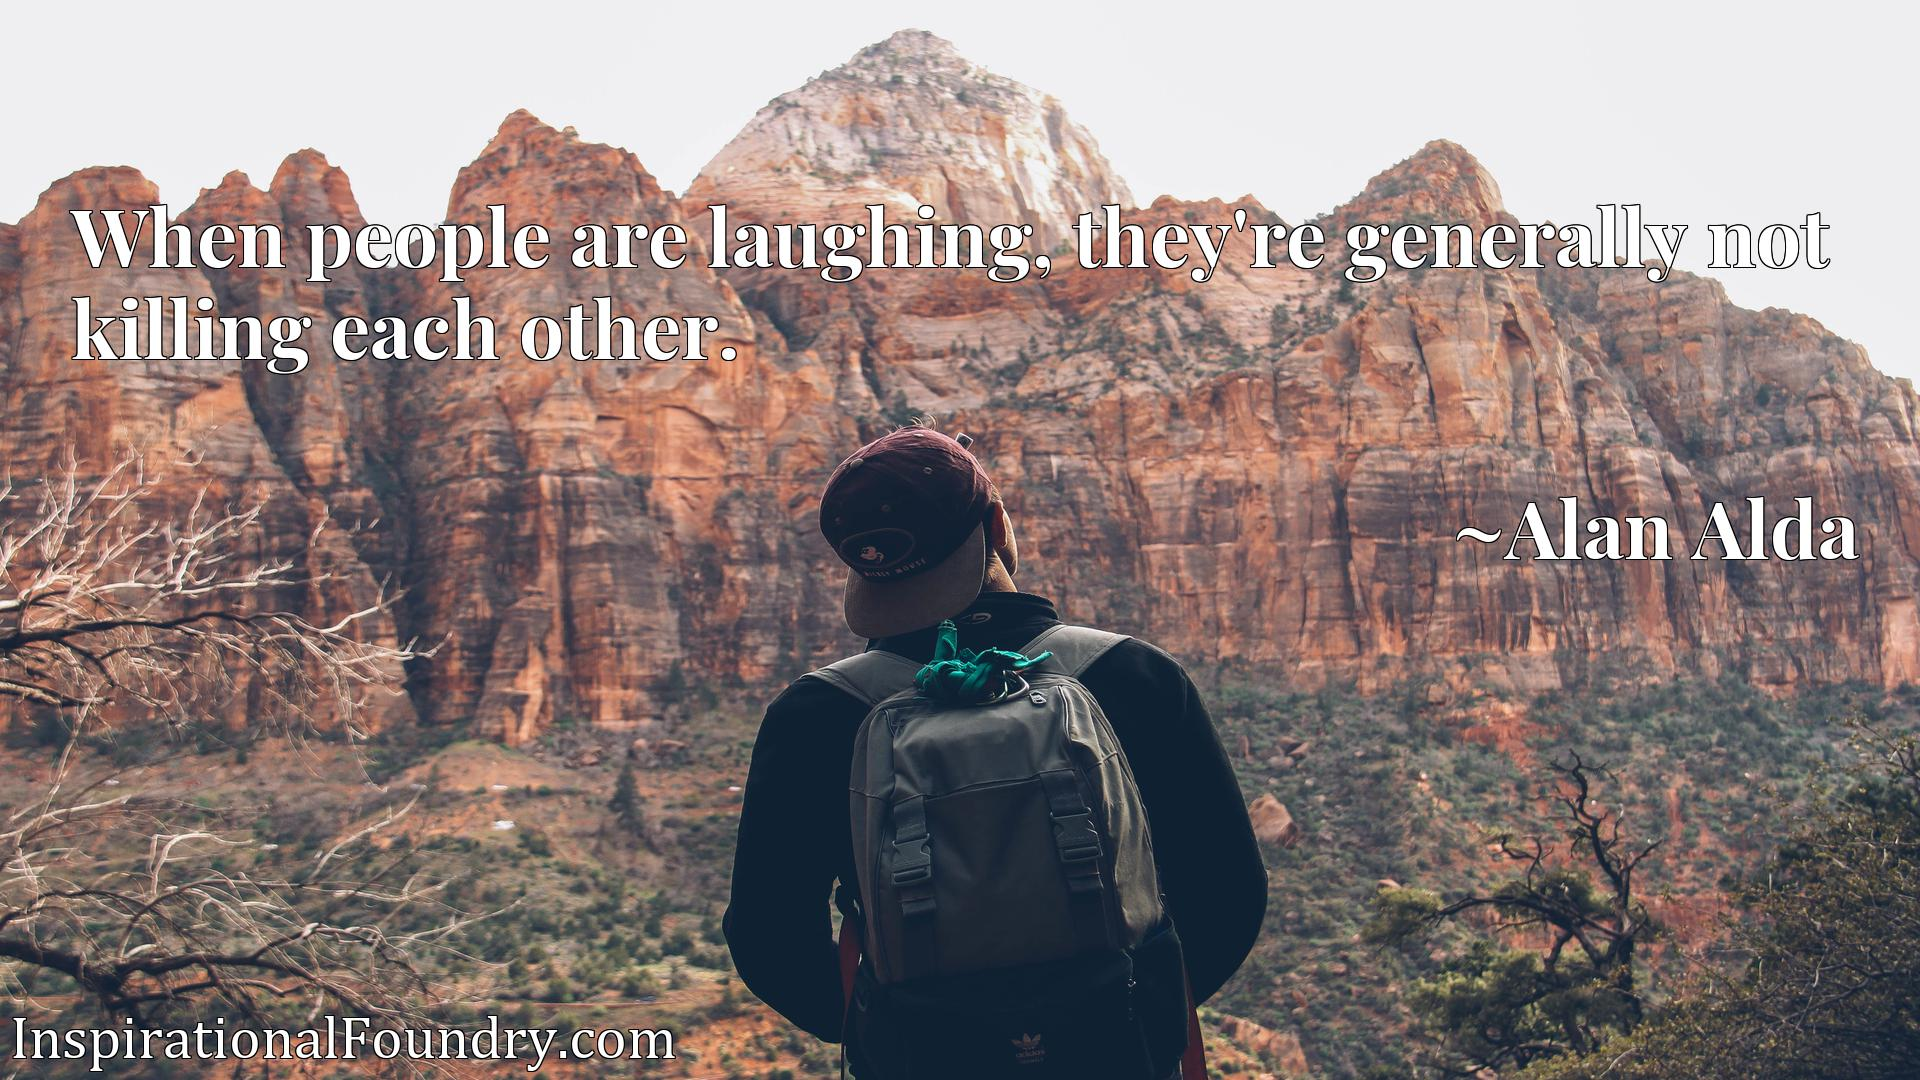 When people are laughing, they're generally not killing each other.